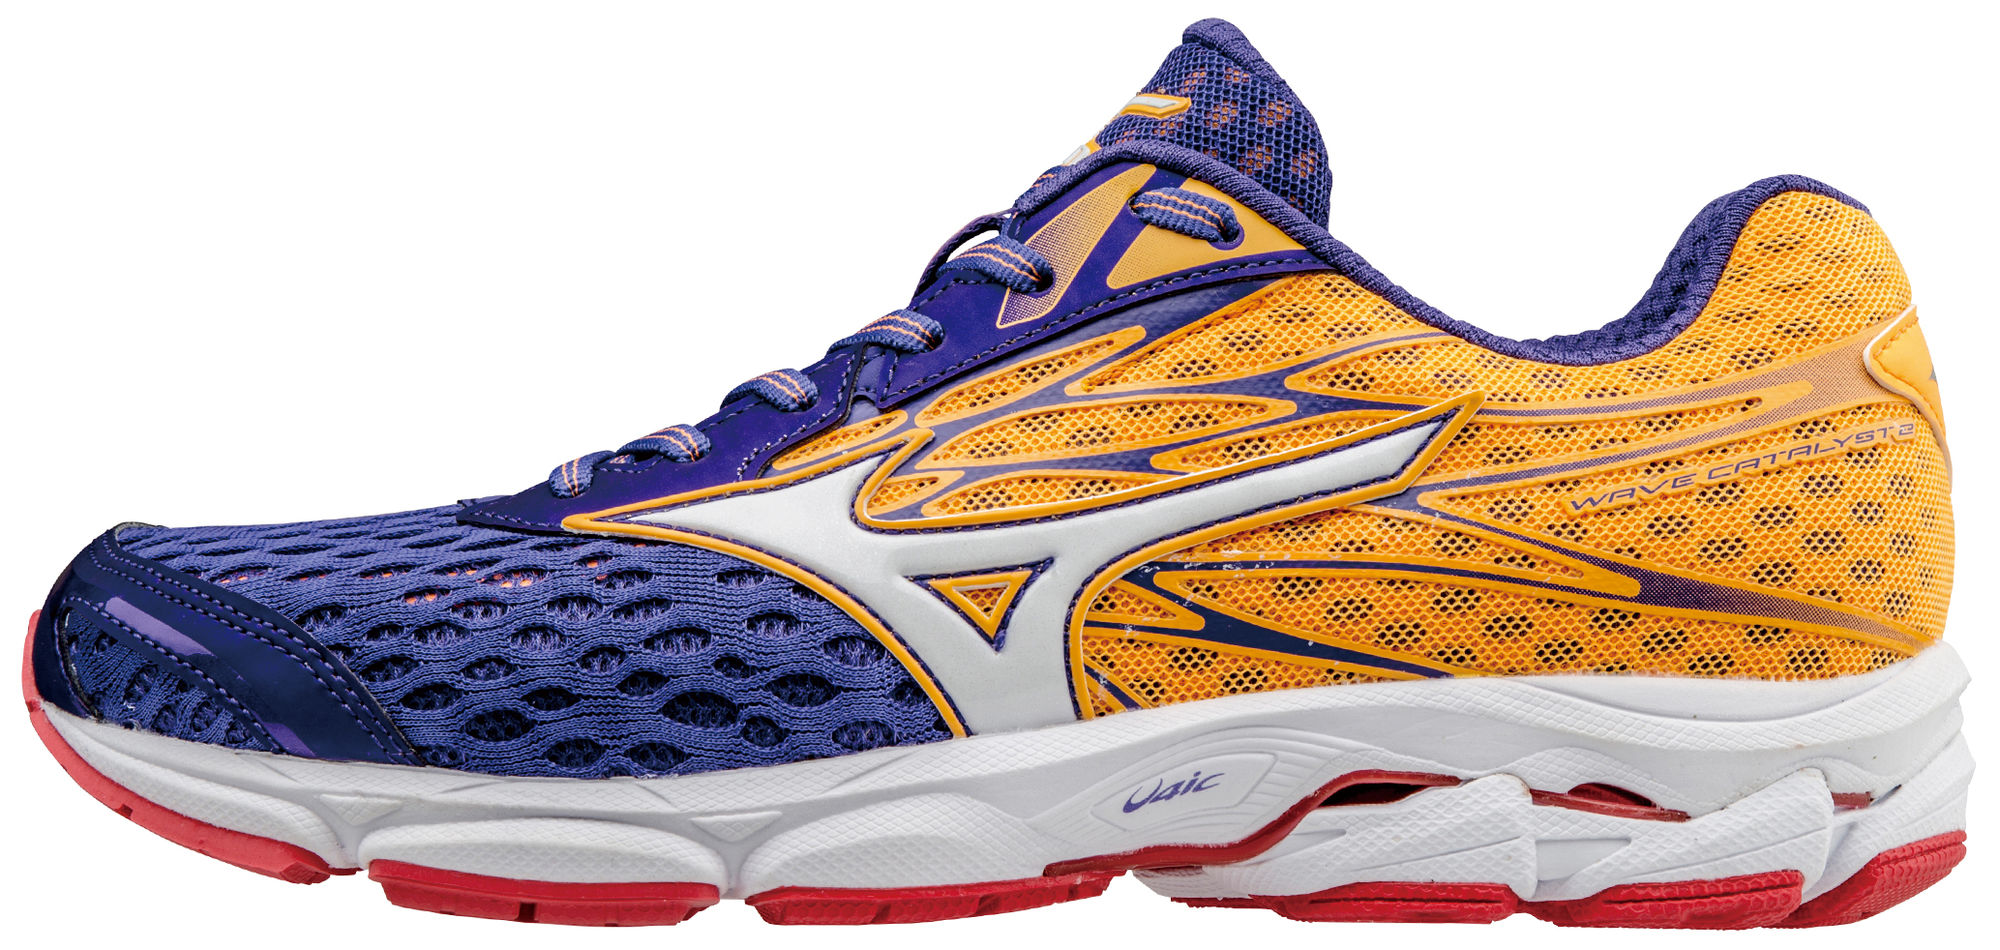 Mizuno Lady Wave Catalyst 2 in Blau Orange